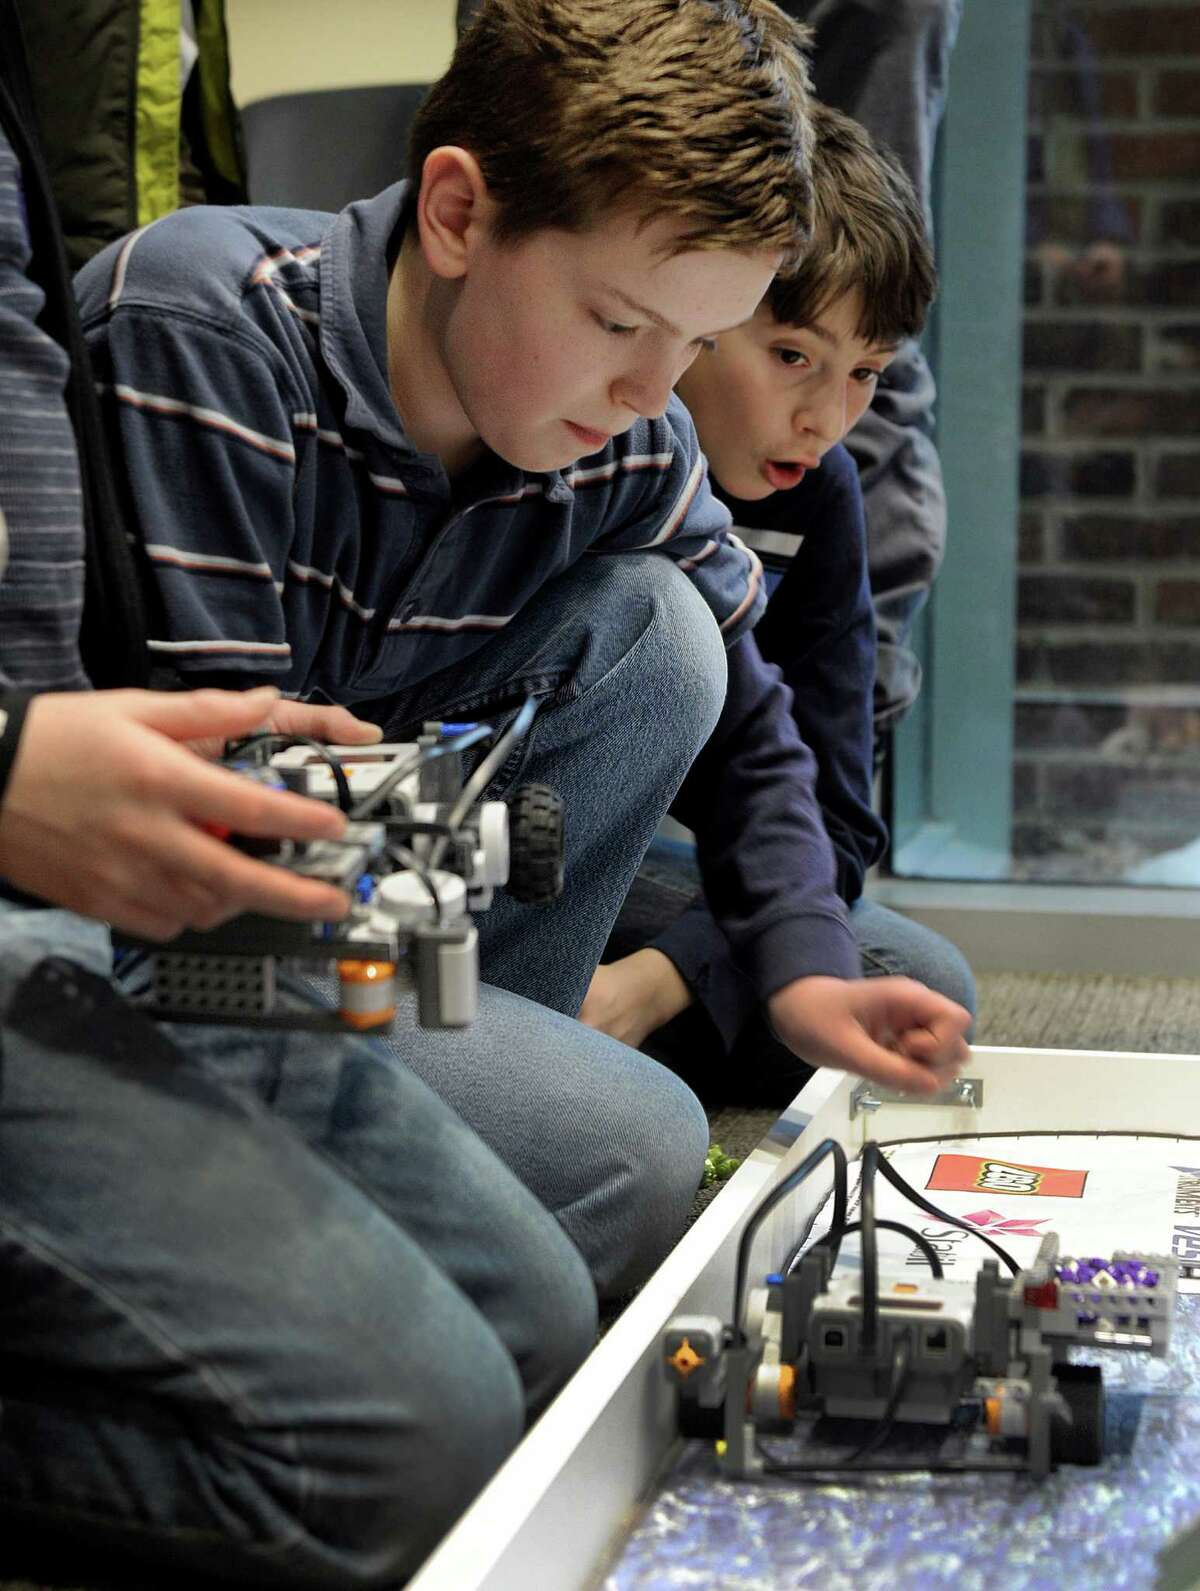 """Conor Hankla, 12, left, works his robot during a technology celebration called """"Hour of Code"""" held at the Ridgefield Library Saturday, February 7, 2015. Kids in the library's Robotic Club who built robots and developed the program codes that make them function, demonstrated them Saturday."""